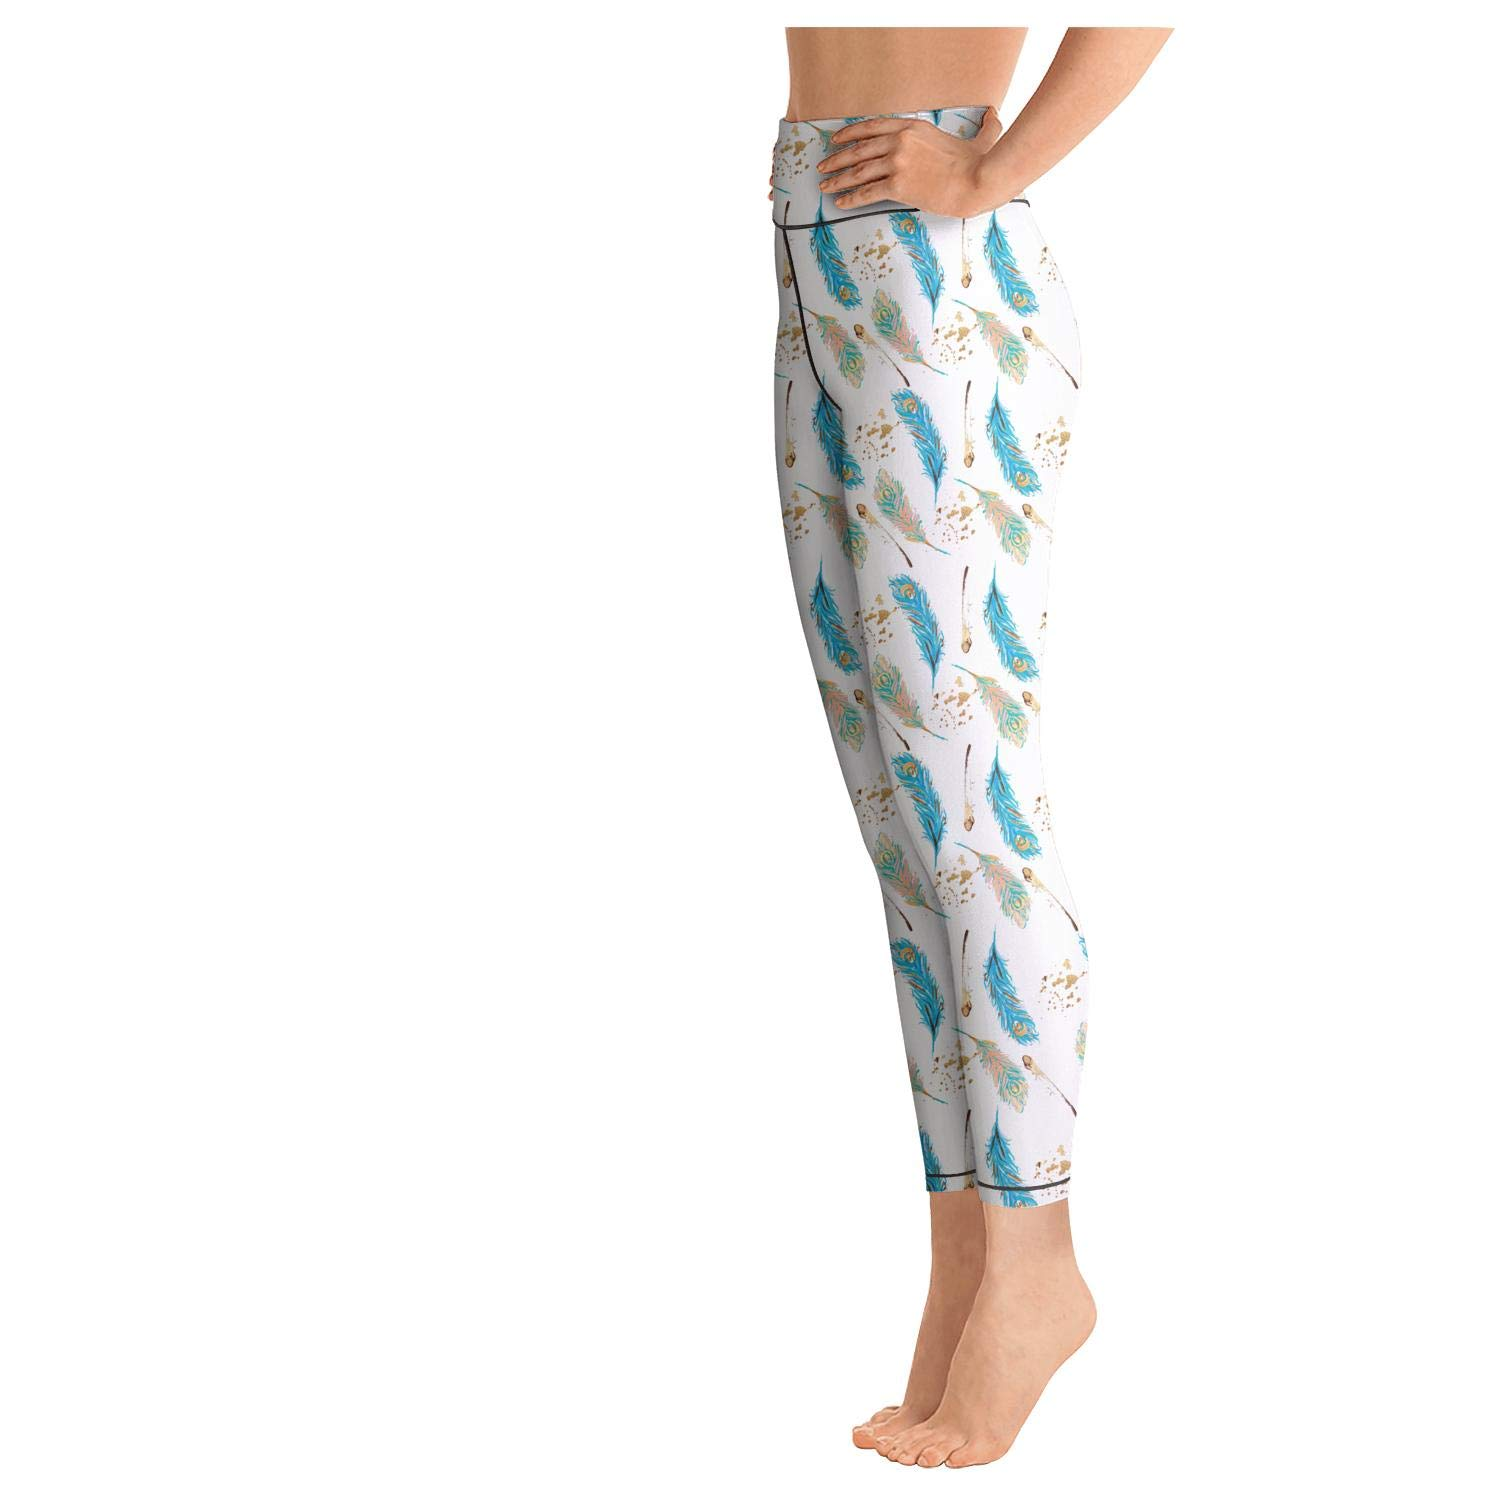 AugGThomas Womens Blue Ostrich Feathers Workout Running Leggins Tummy Control Stretch Yoga Pants with Pockets